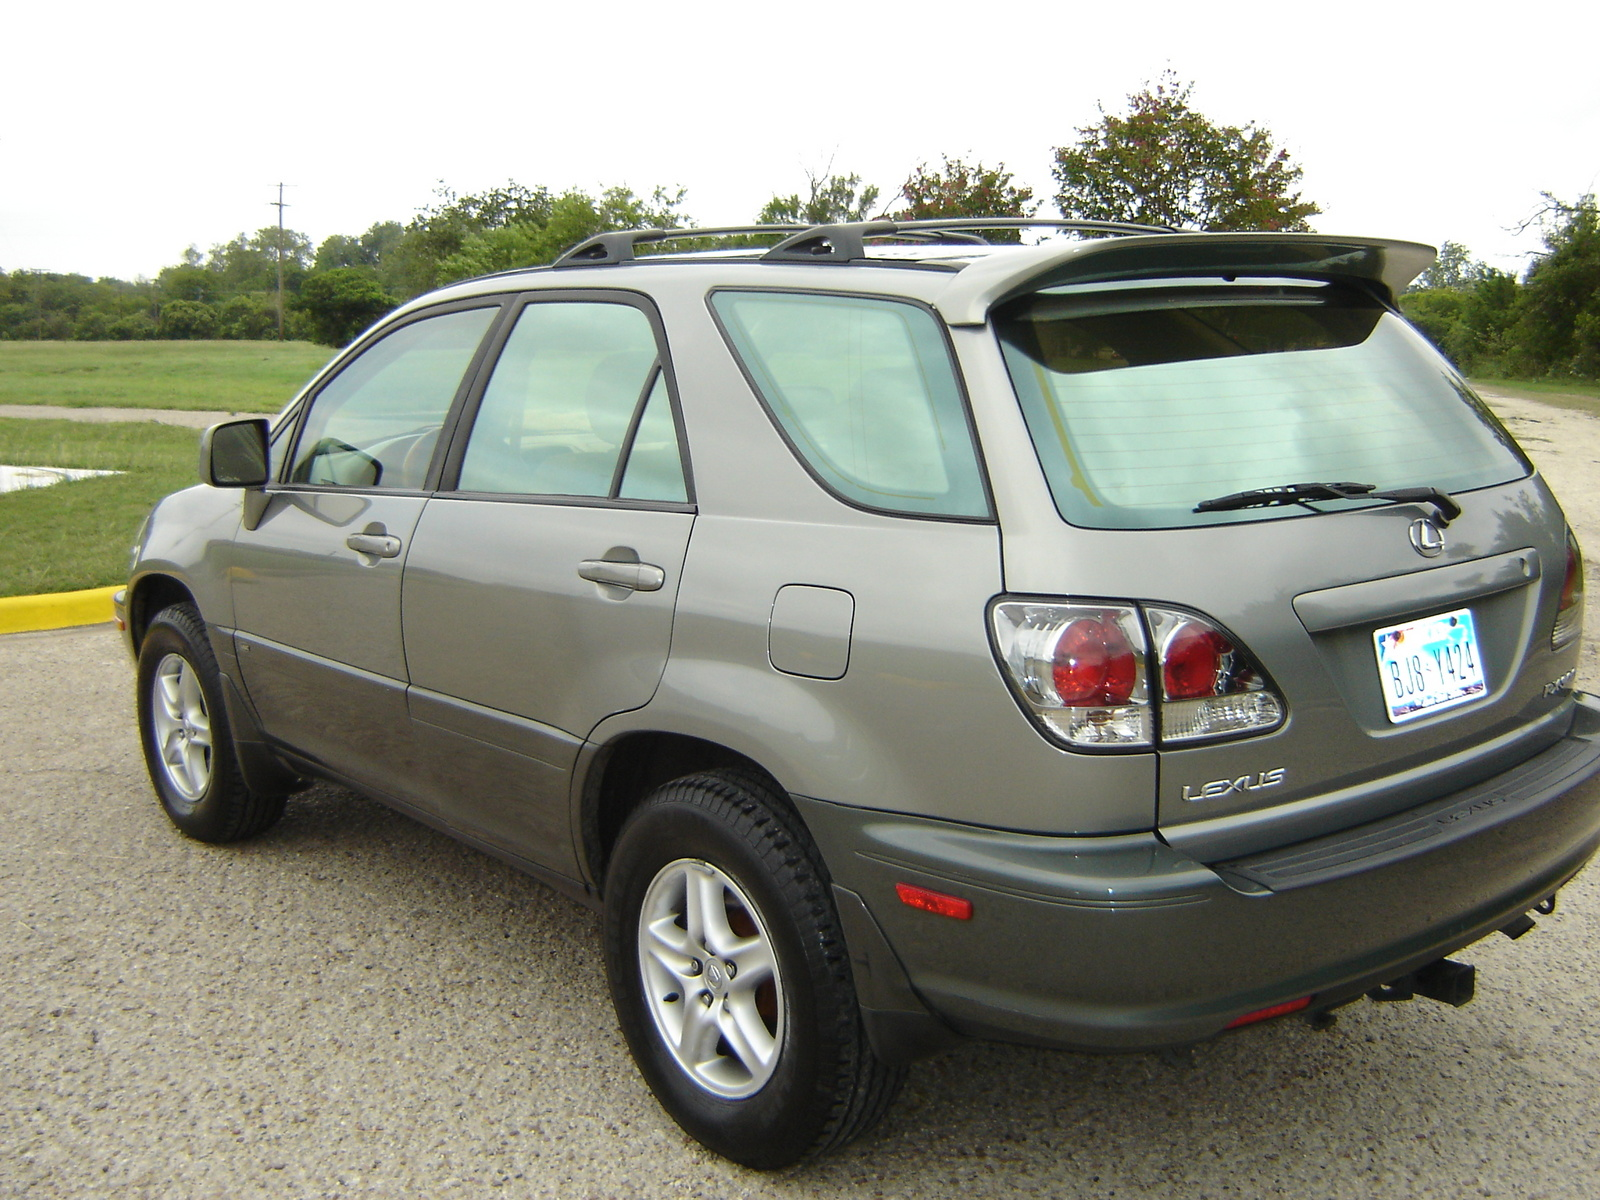 Lexus RX 300 2002 photo - 2